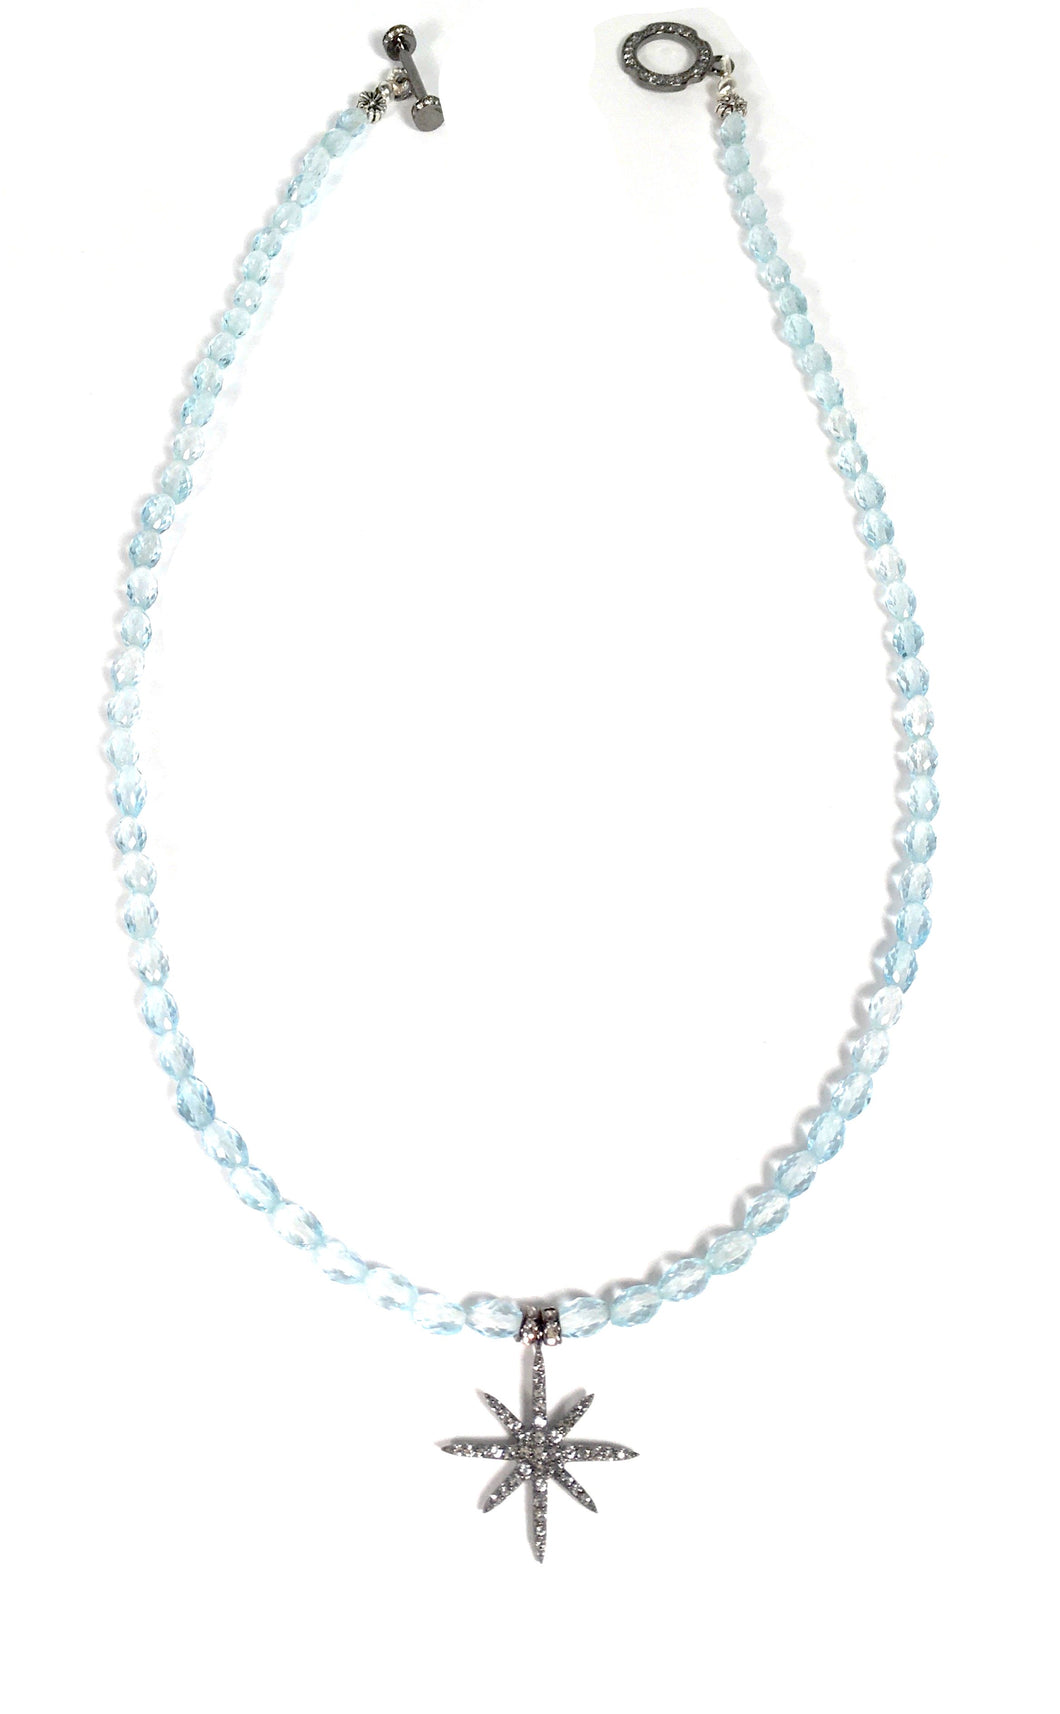 North Star White Topaz Pendant with Baby Blue Ovals